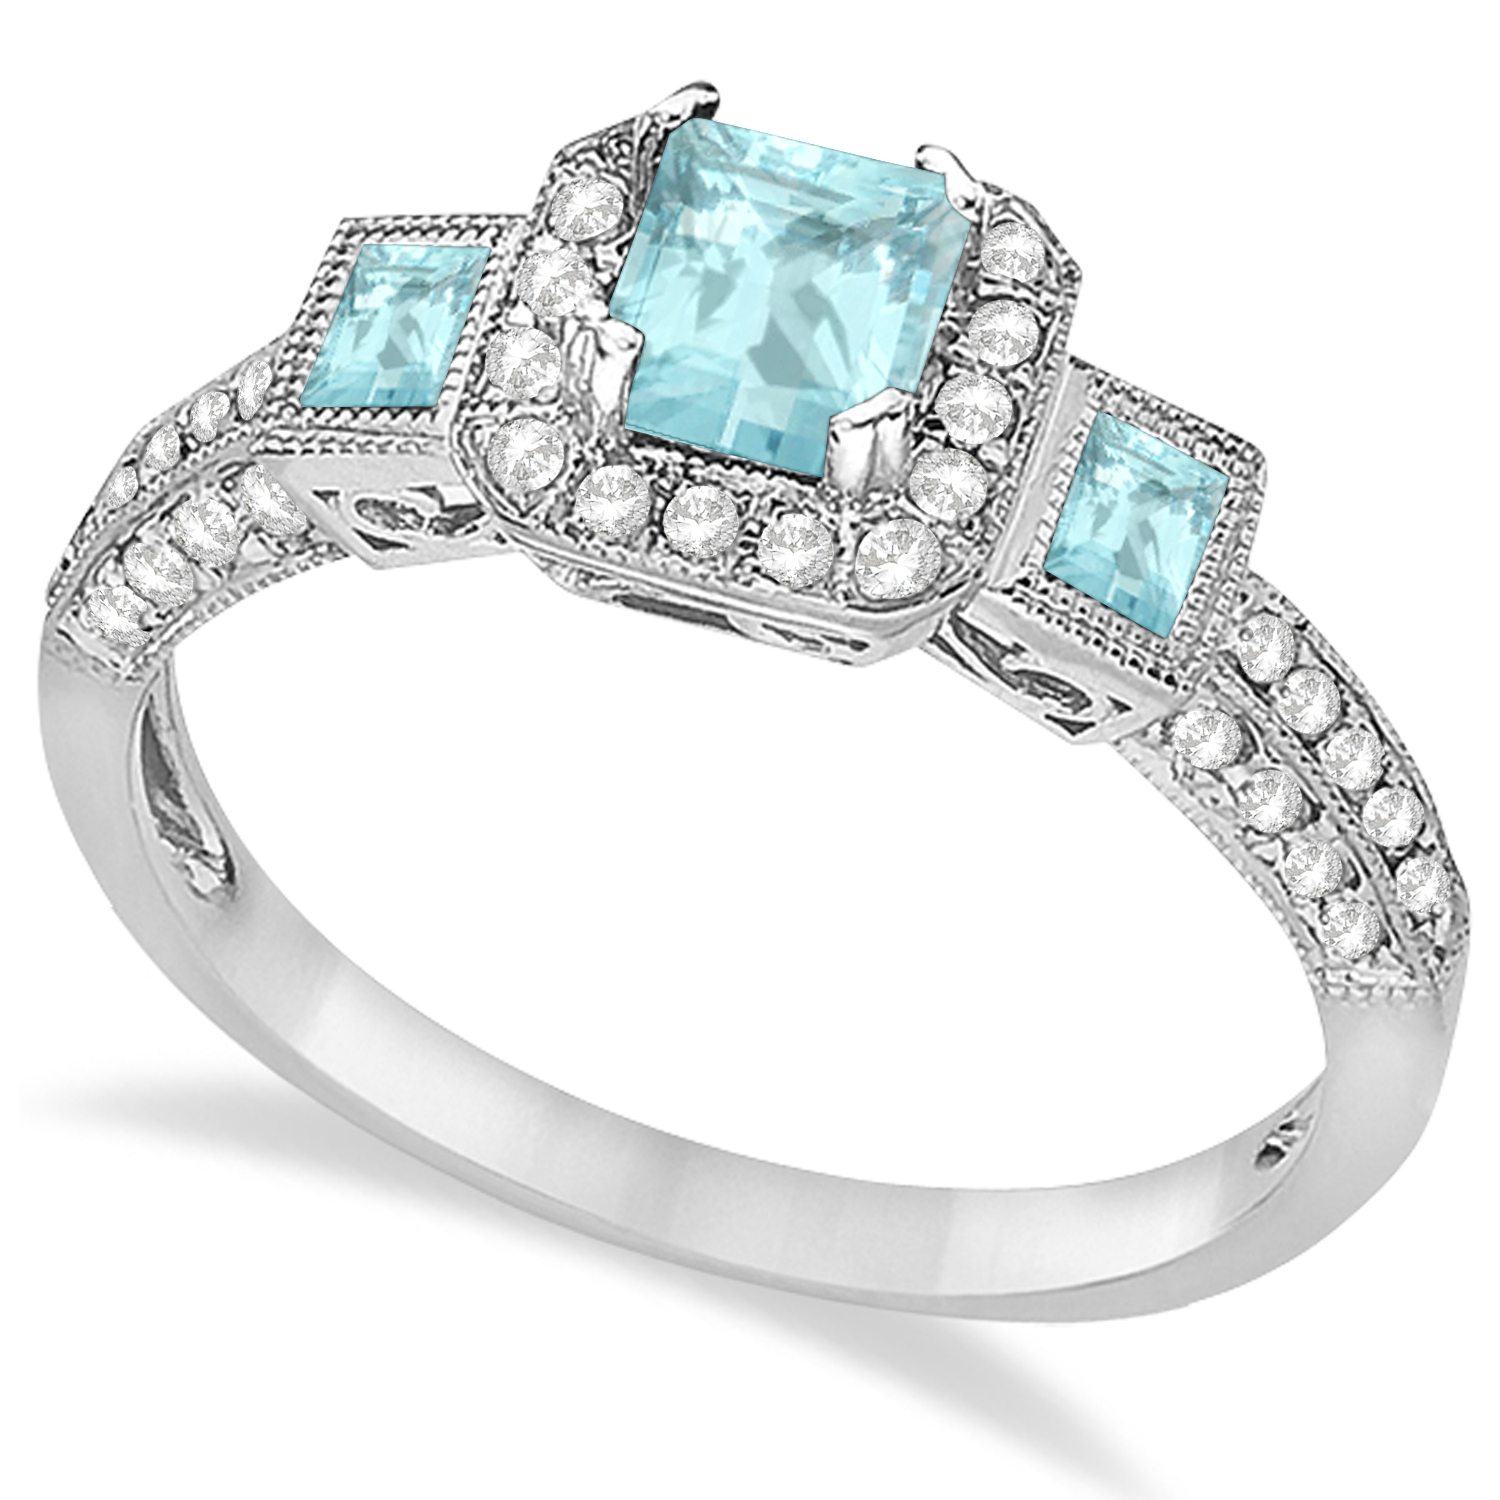 aqua rings legacyaquamarine aquamarine shot usm model m tiffany ring engagement legacy sv jewelry op